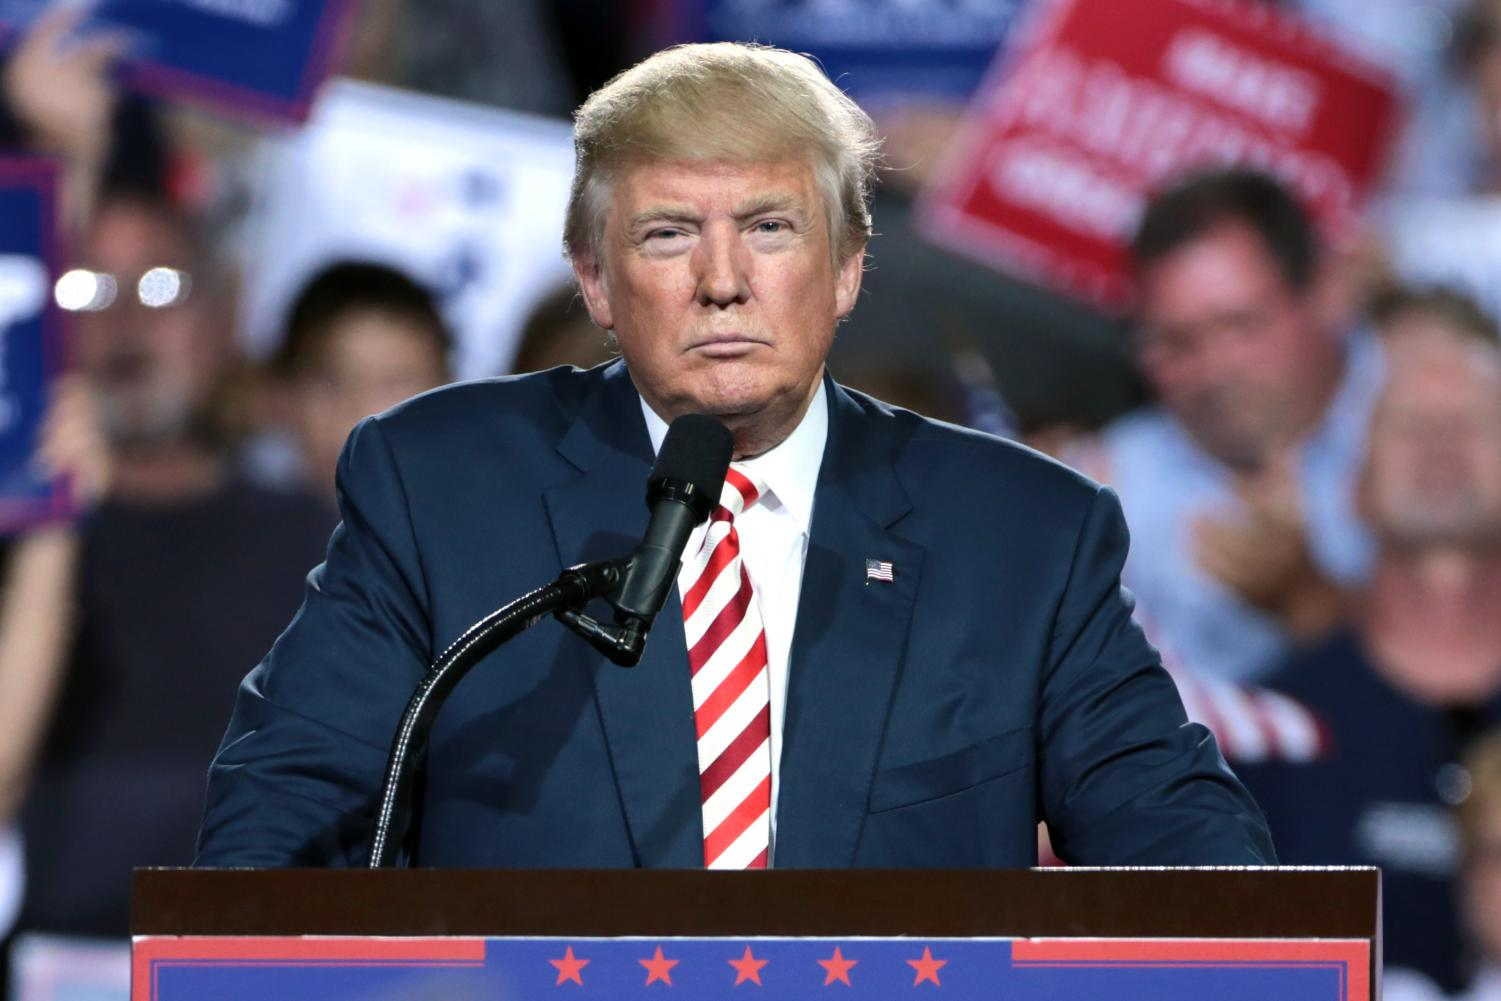 President Donald Trump addressing a crowd. Photo via Wikimedia Commons under the Creative Commons License.